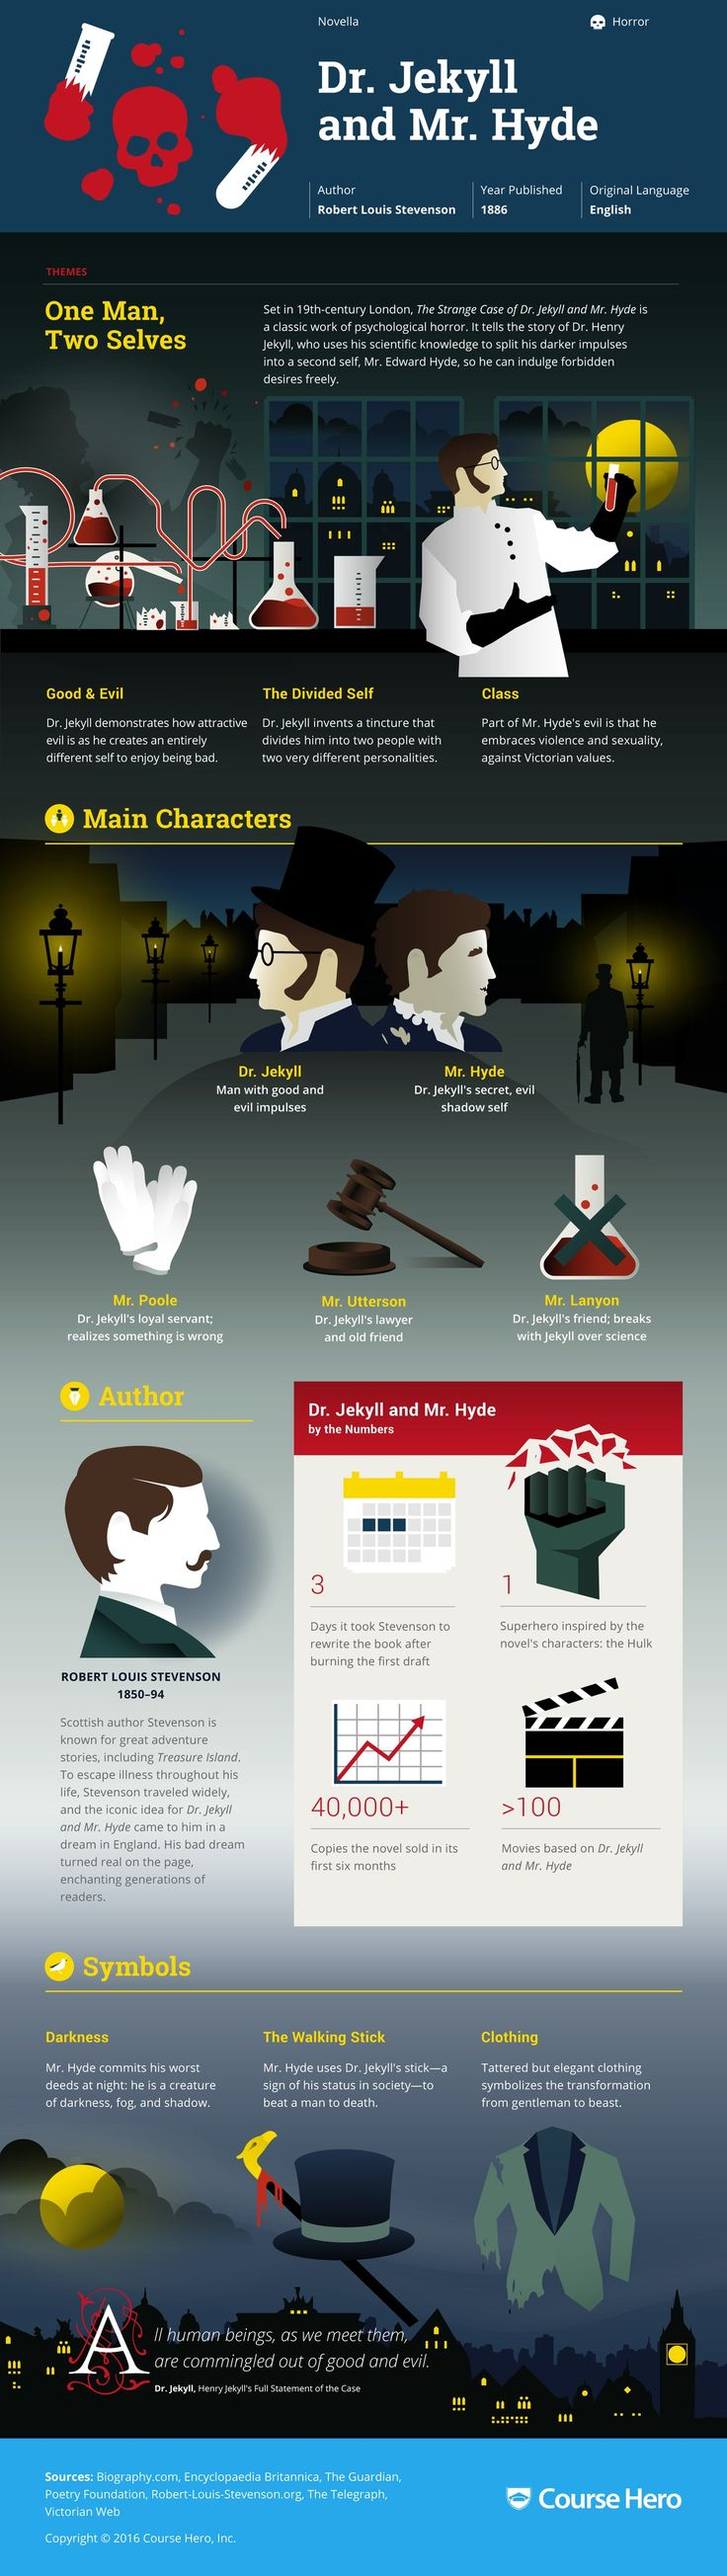 Dr. Jekyll and Mr. Hyde Infographic | Course Hero #Infographic #Infografía